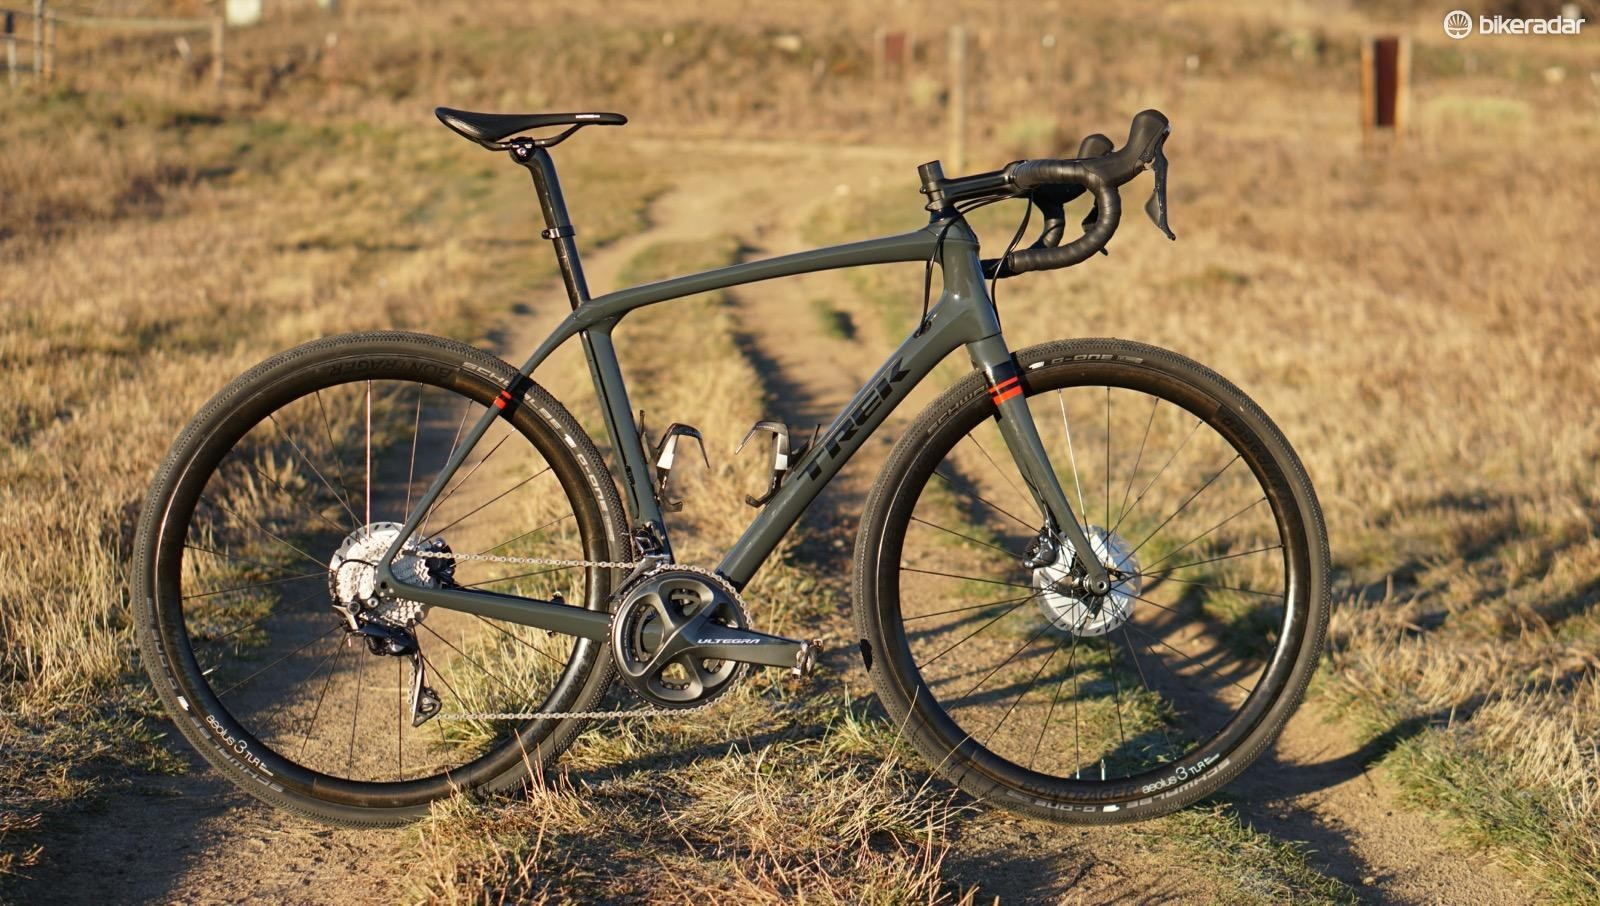 The Trek Domane Gravel is a normal Domane, but with Schwalbe G-One 35mm tires